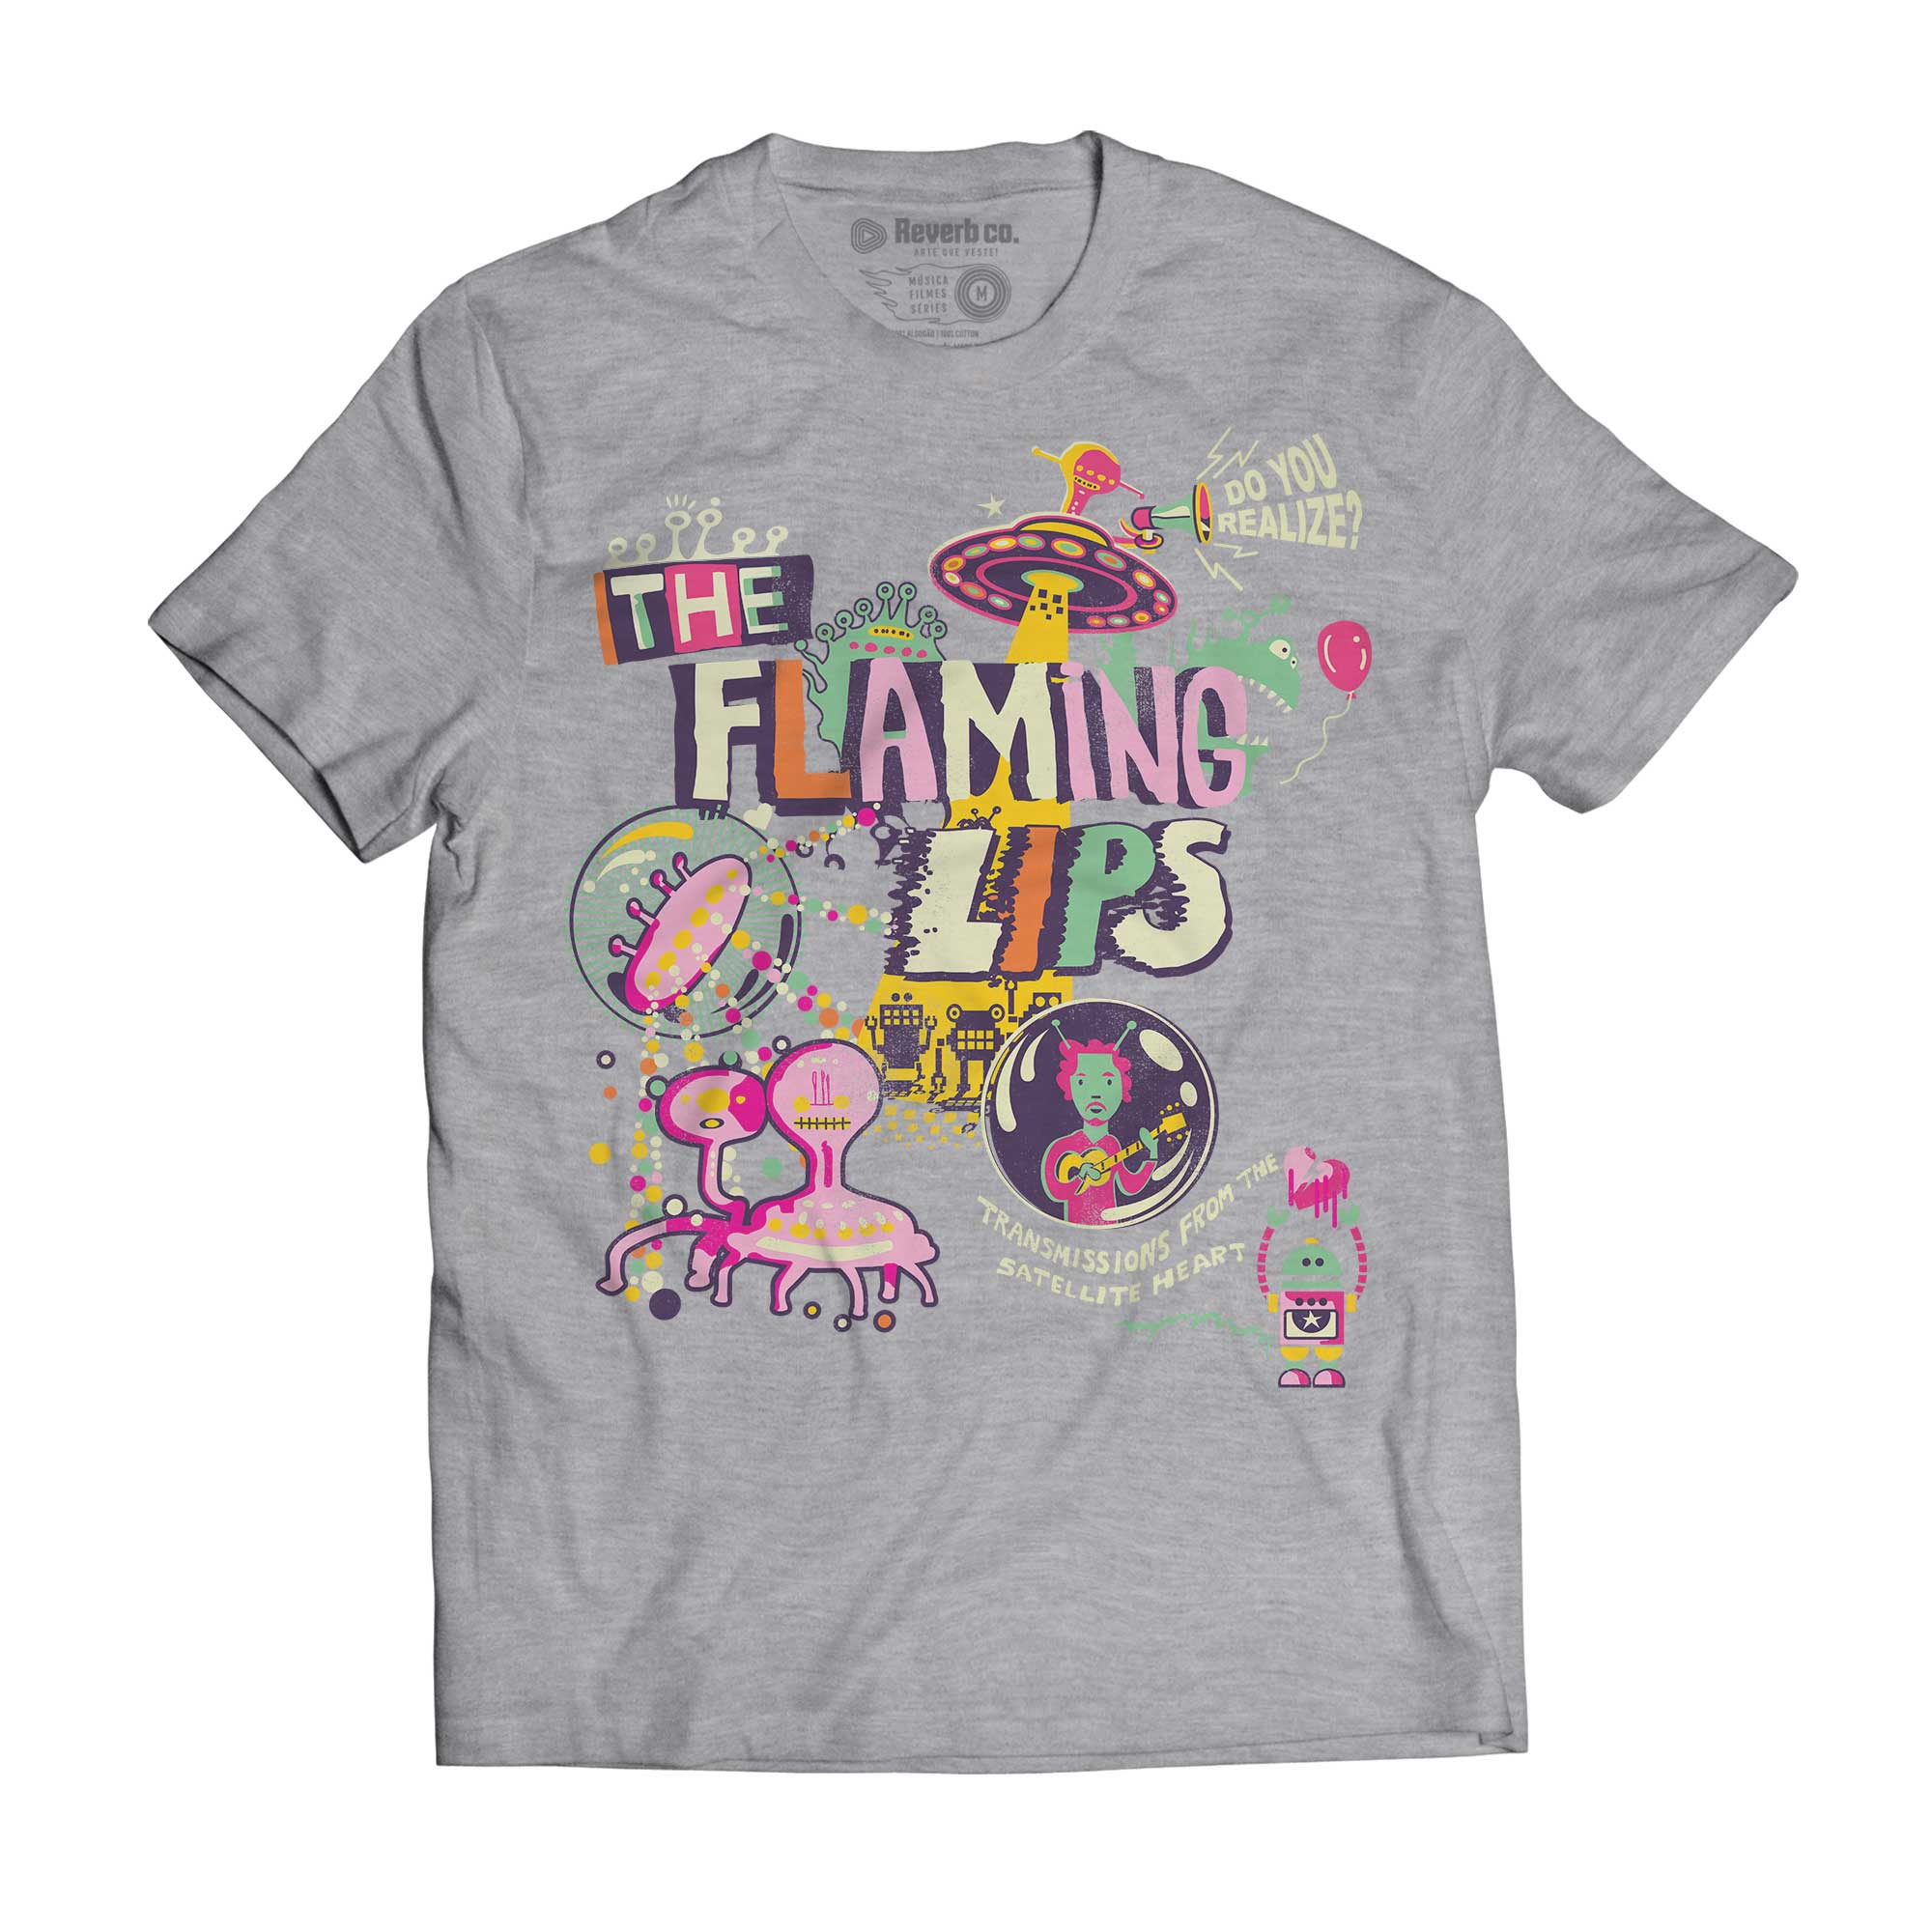 Camiseta Transmissions - The Flaming Lips - Masculino